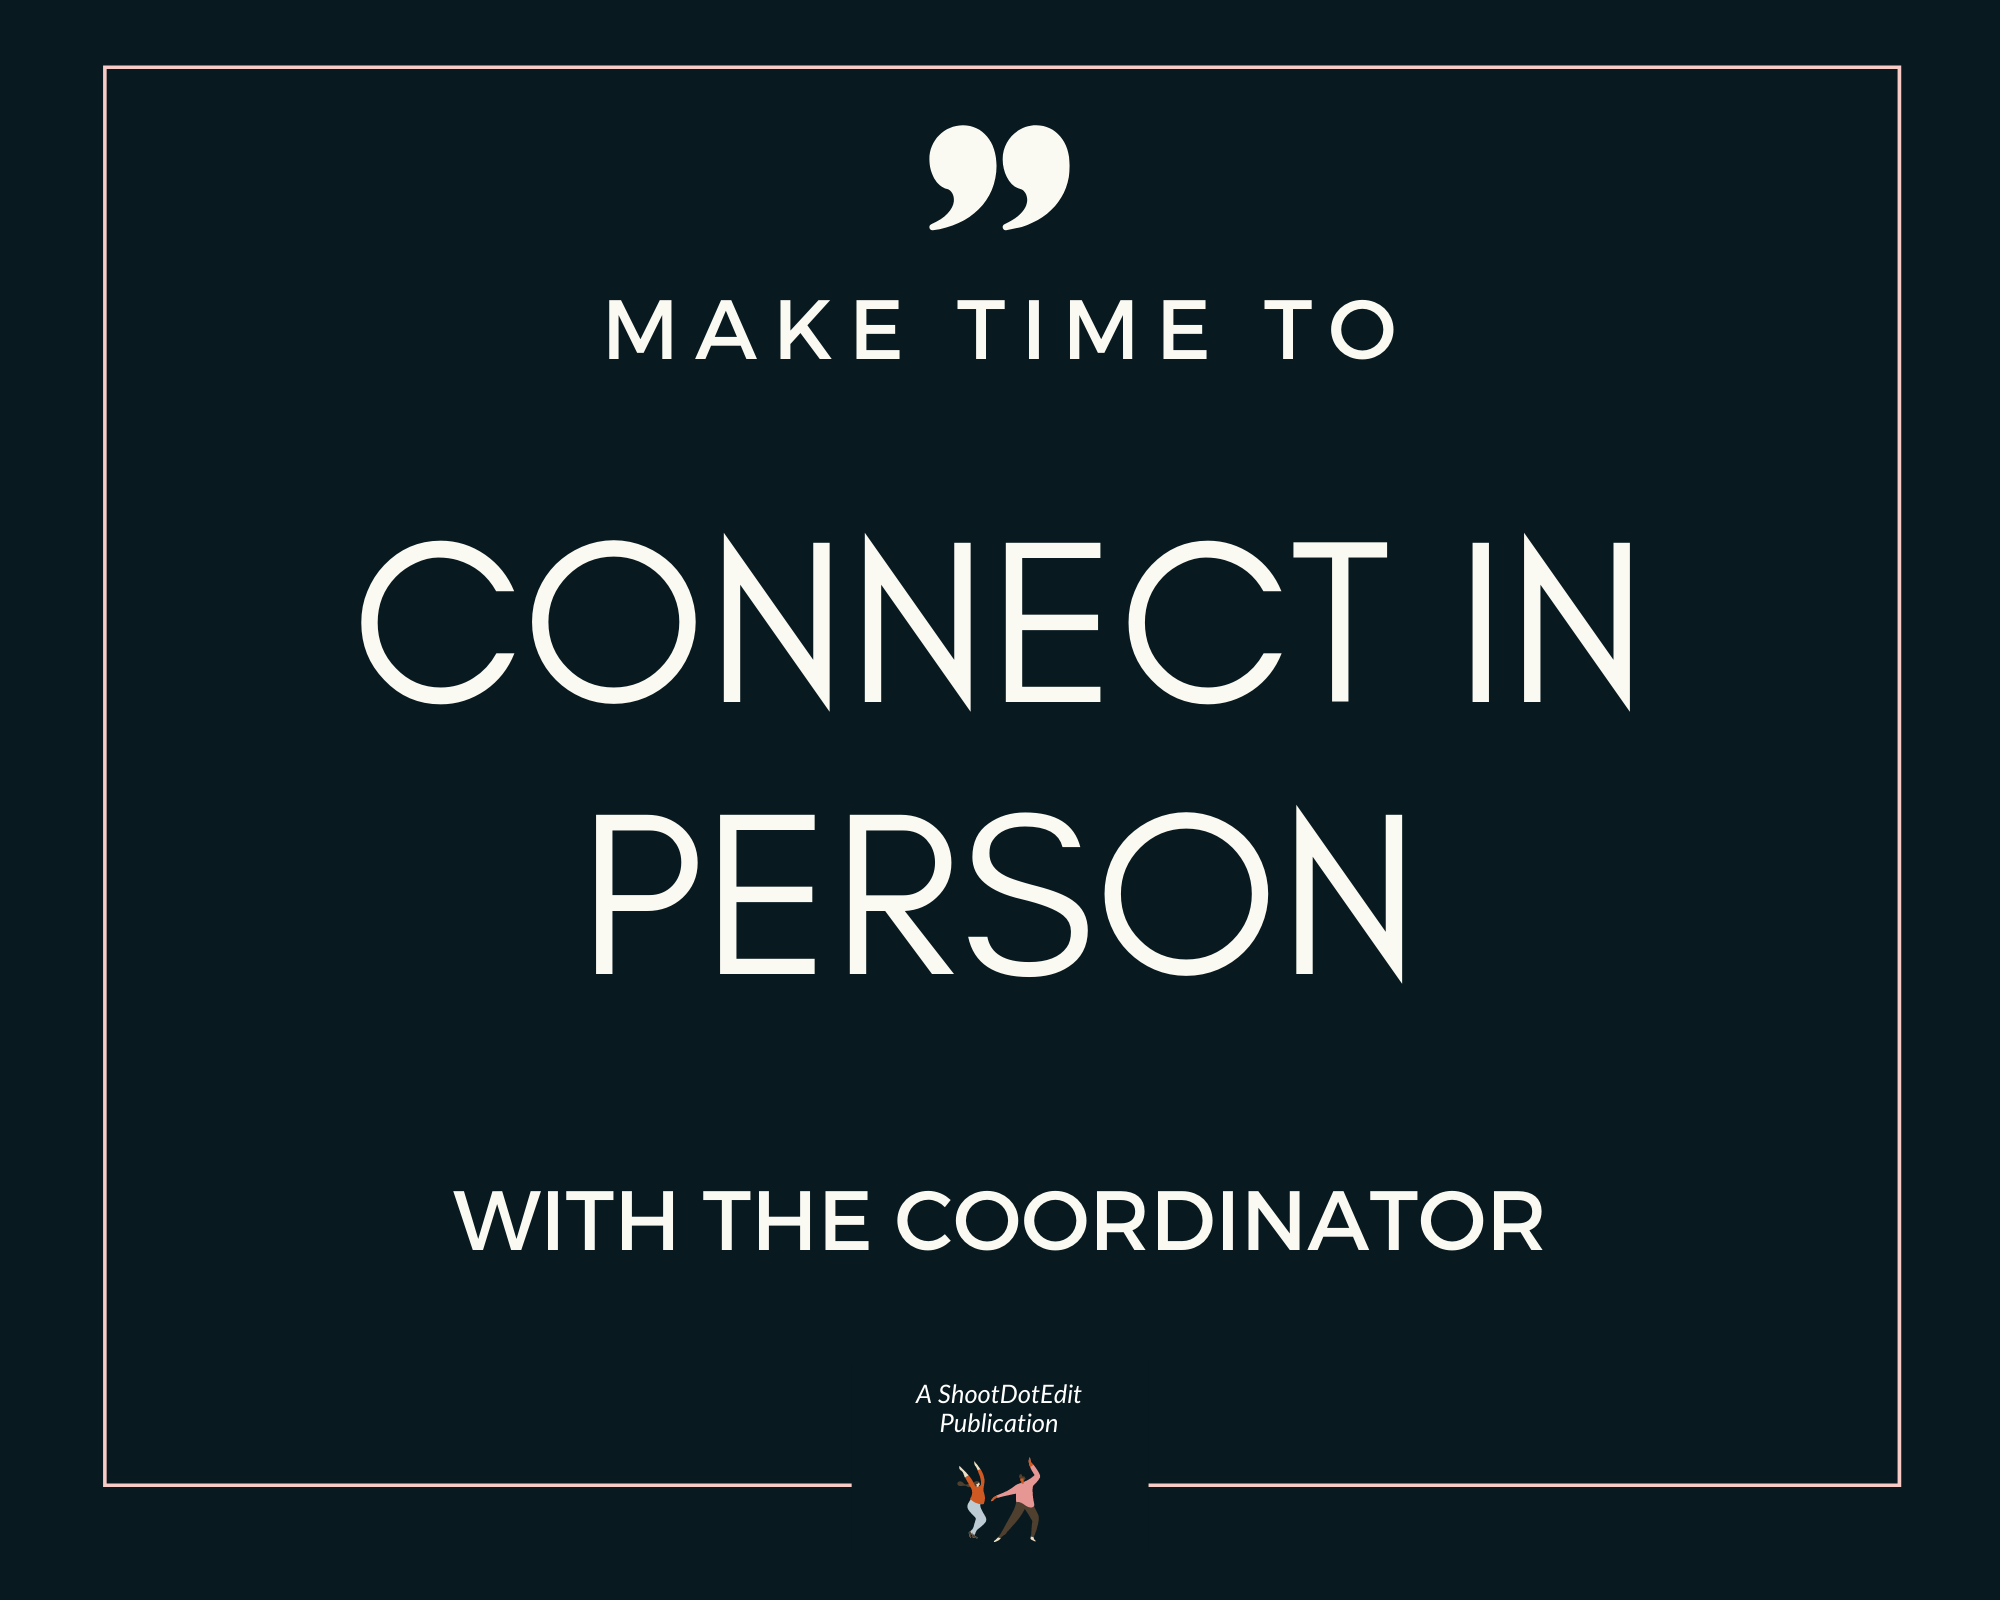 Make time to connect in person with the coordinator to be on a venue's preferred vendor list